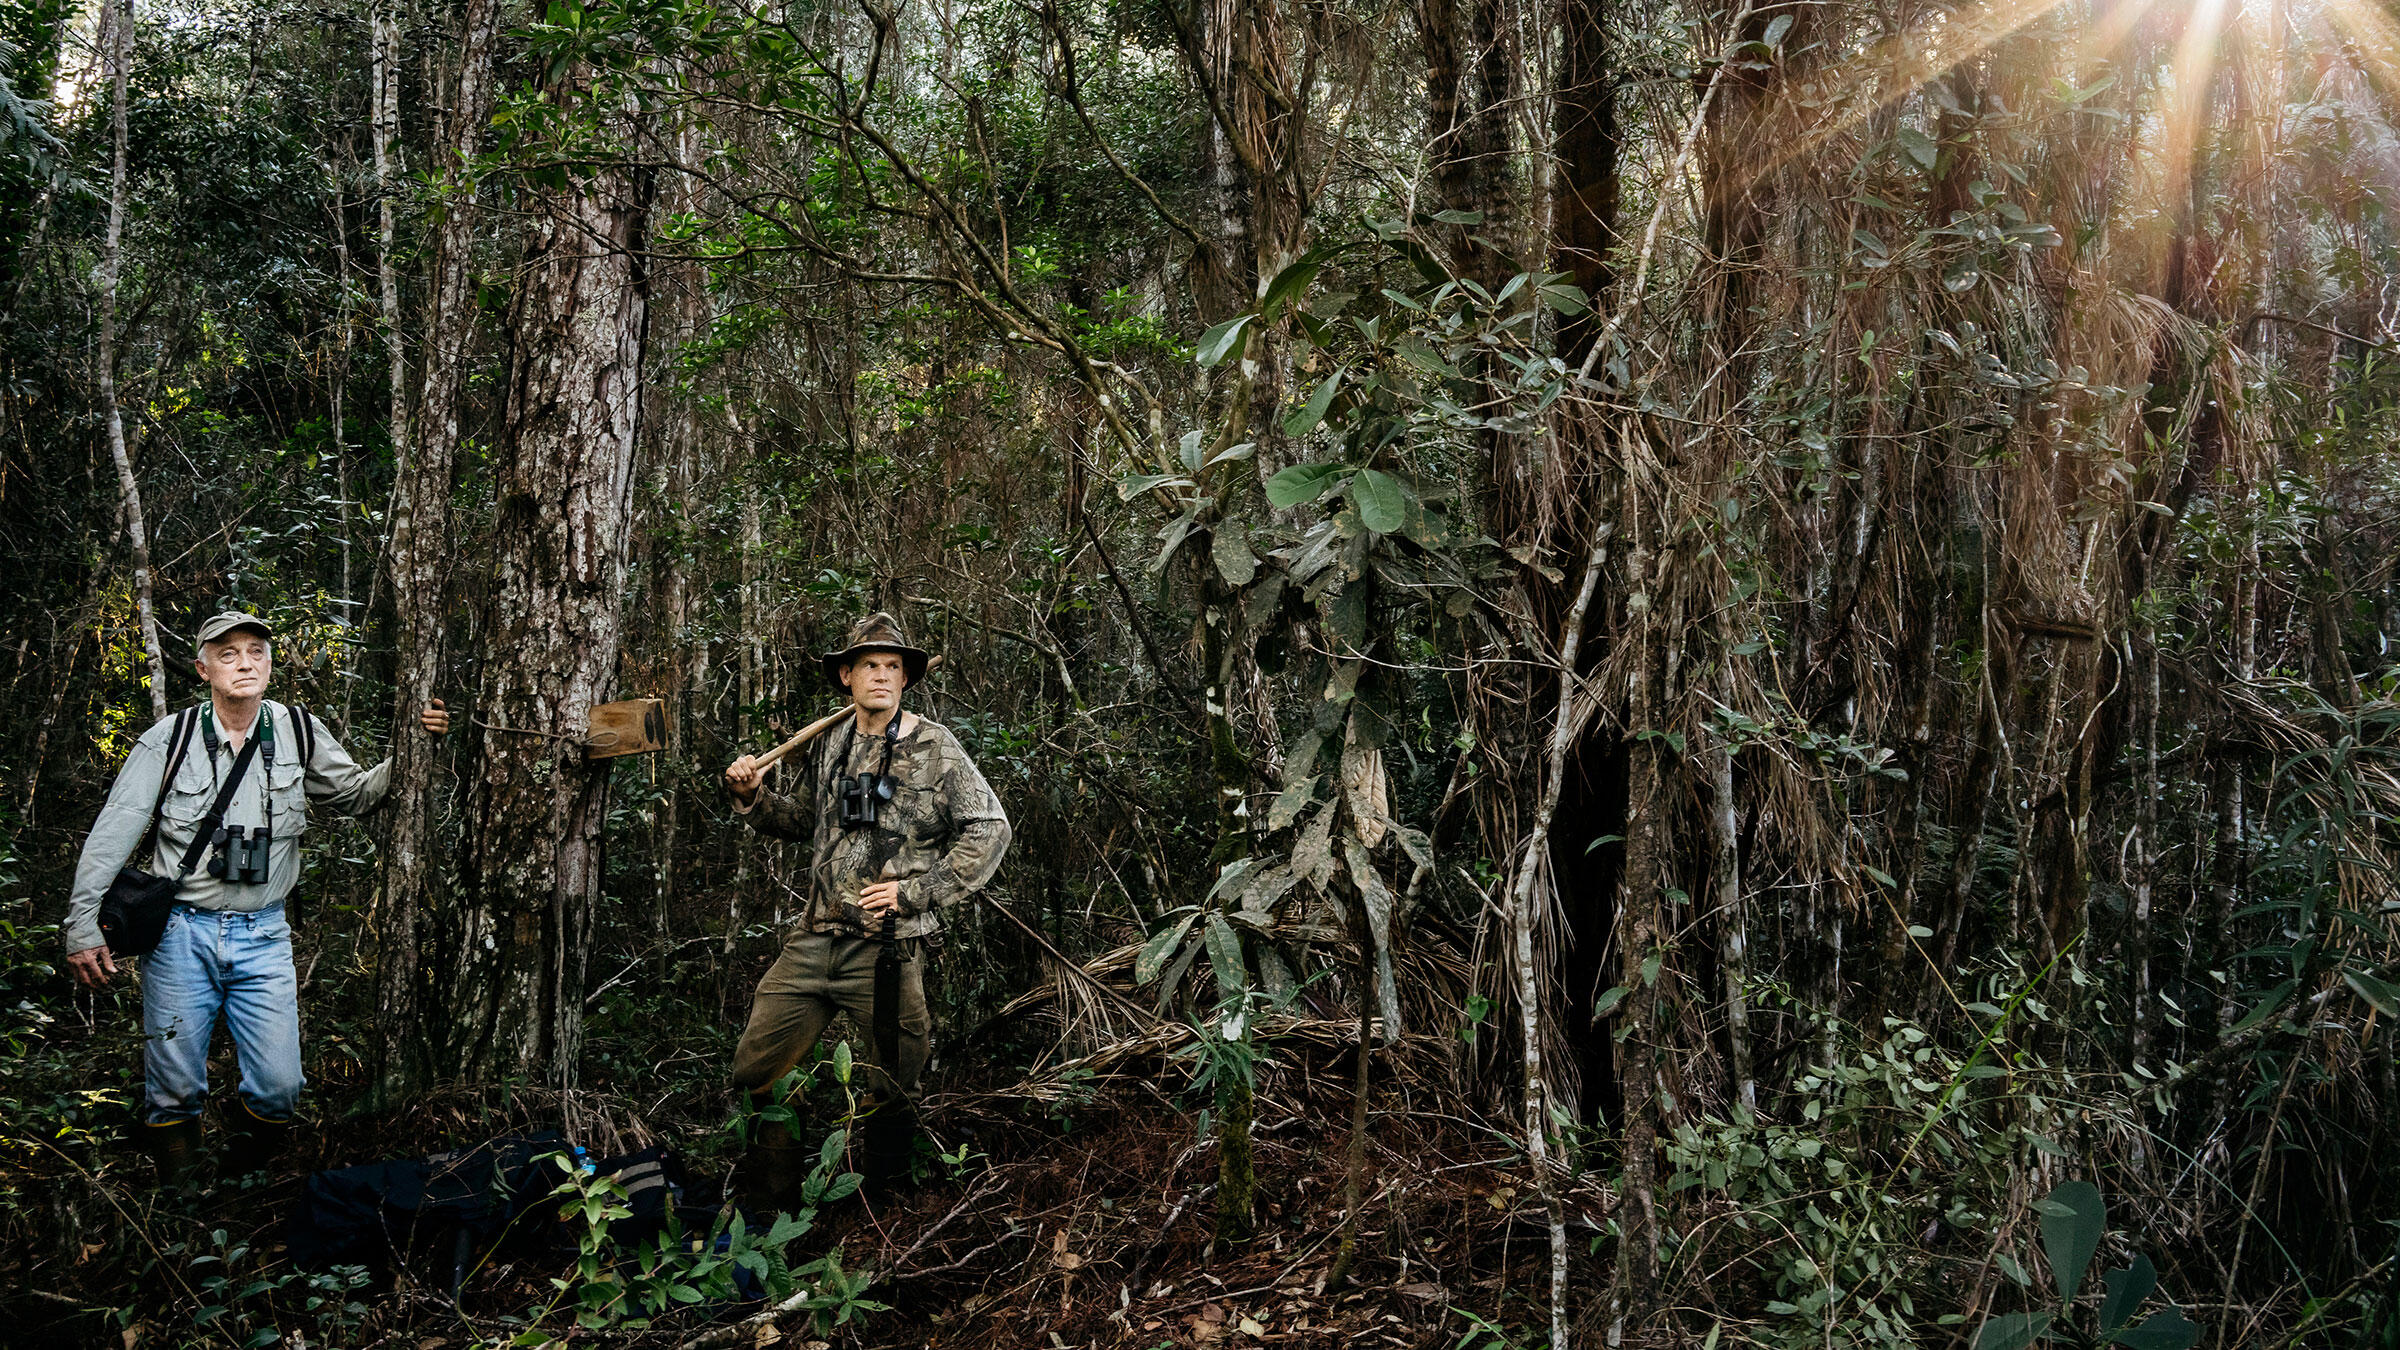 Tim Gallagher (left) and Martjan Lammertink on their Ivory-bill quest. Some believe that if the phantom bird still exists, it would mostly likely be here, in the rugged mountain of eastern Cuba. Greg Kahn